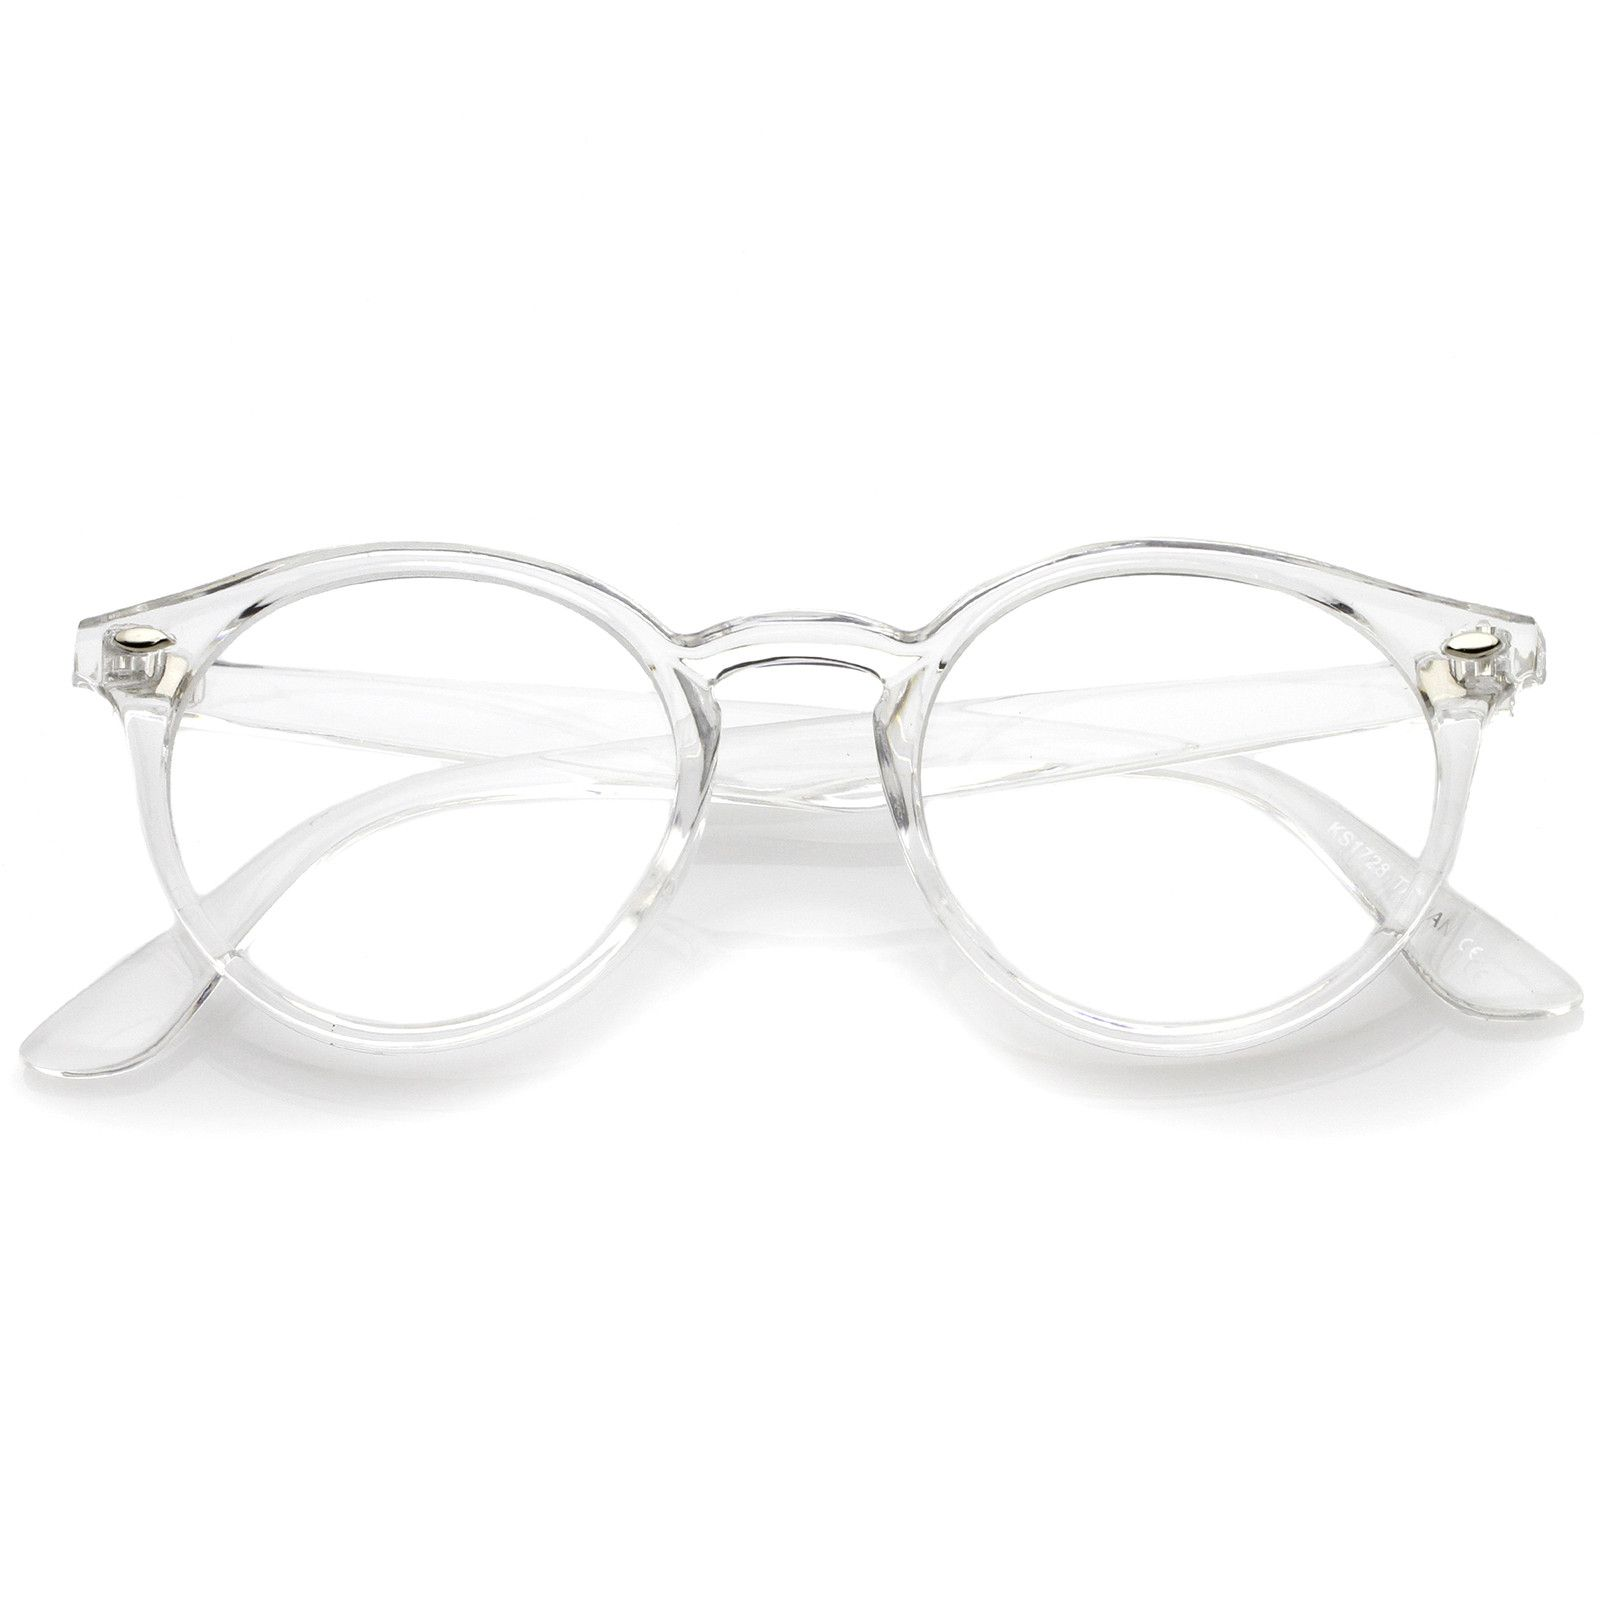 Classic Translucent Horn Rimmed Clear Lens P3 Round Eyeglasses